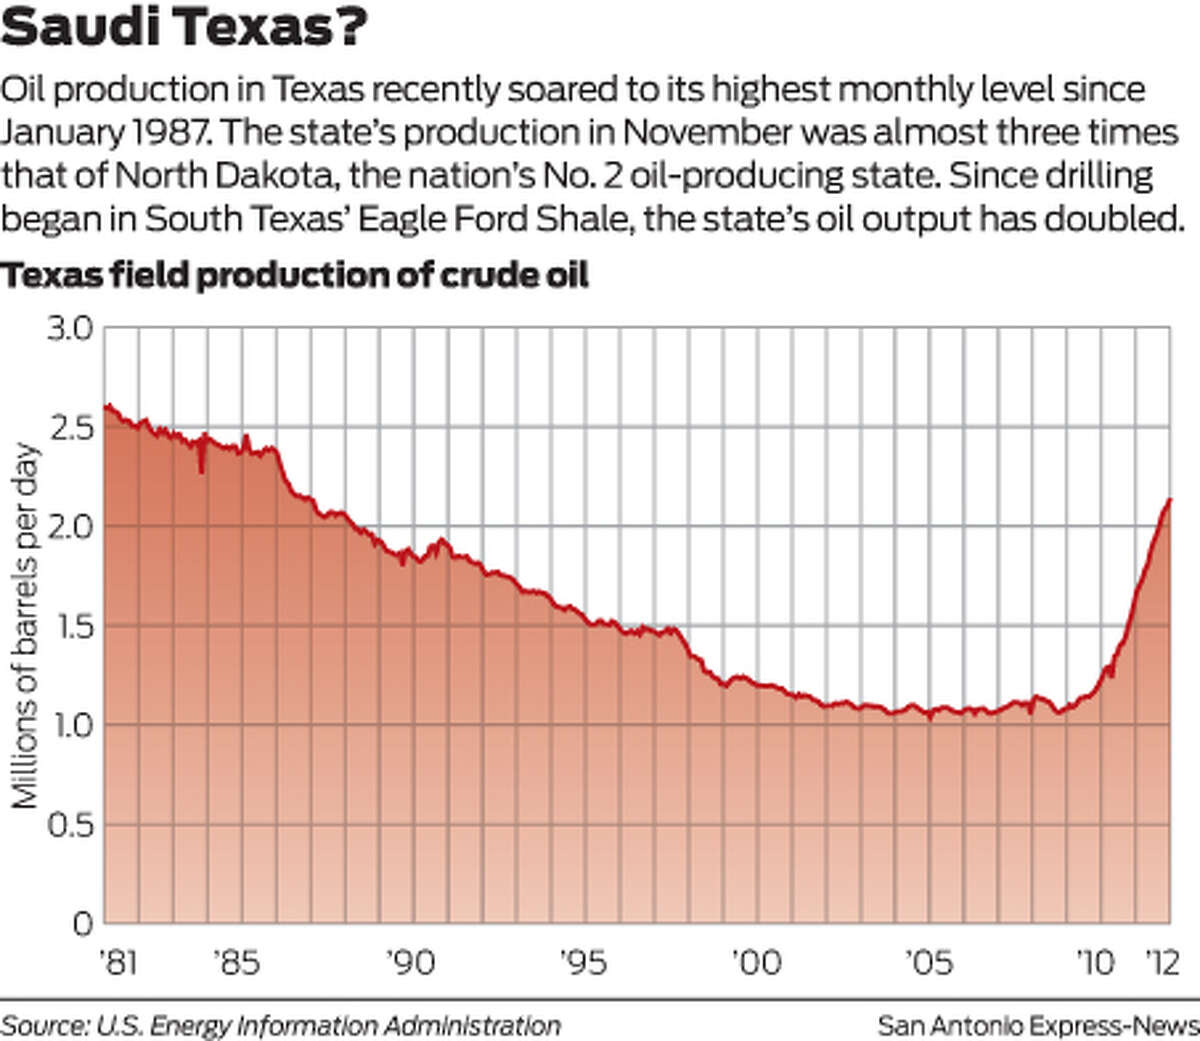 Saudi Texas? Oil production in Texas recently soared to its highest monthly level since January 1987. The state's production in November was almost three times that of North Dakota, the nation's No. 2 oil-producing state. Since drilling began in the South Texas' Eagle Ford Shale, the state's oil output has doubled.